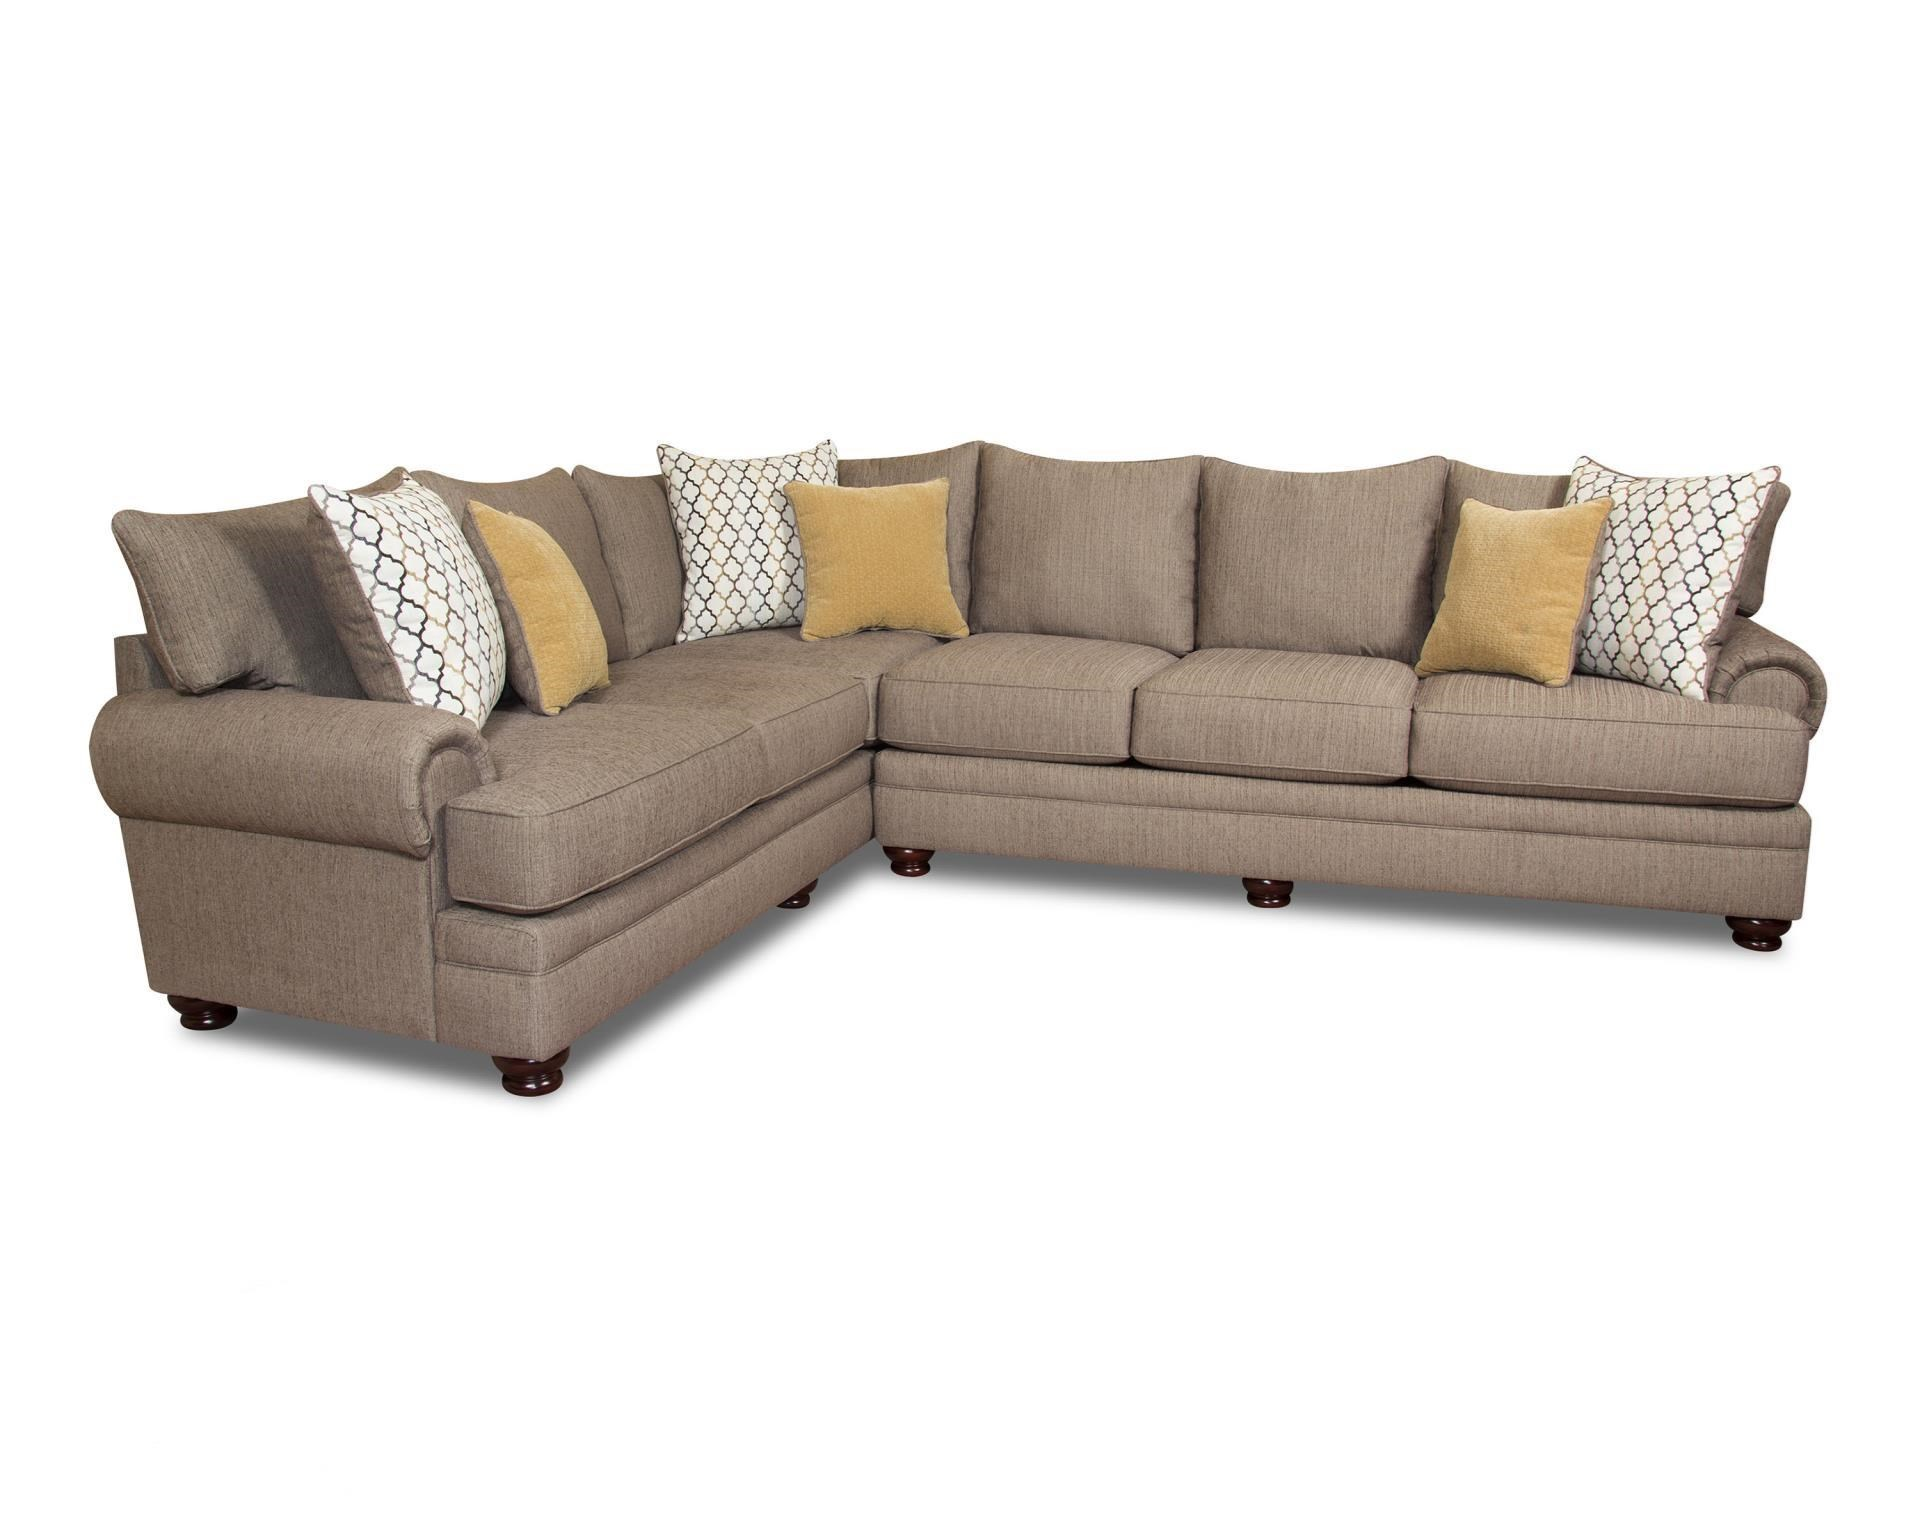 Furniture Stores Dayton Ohiofurniture By Outlet